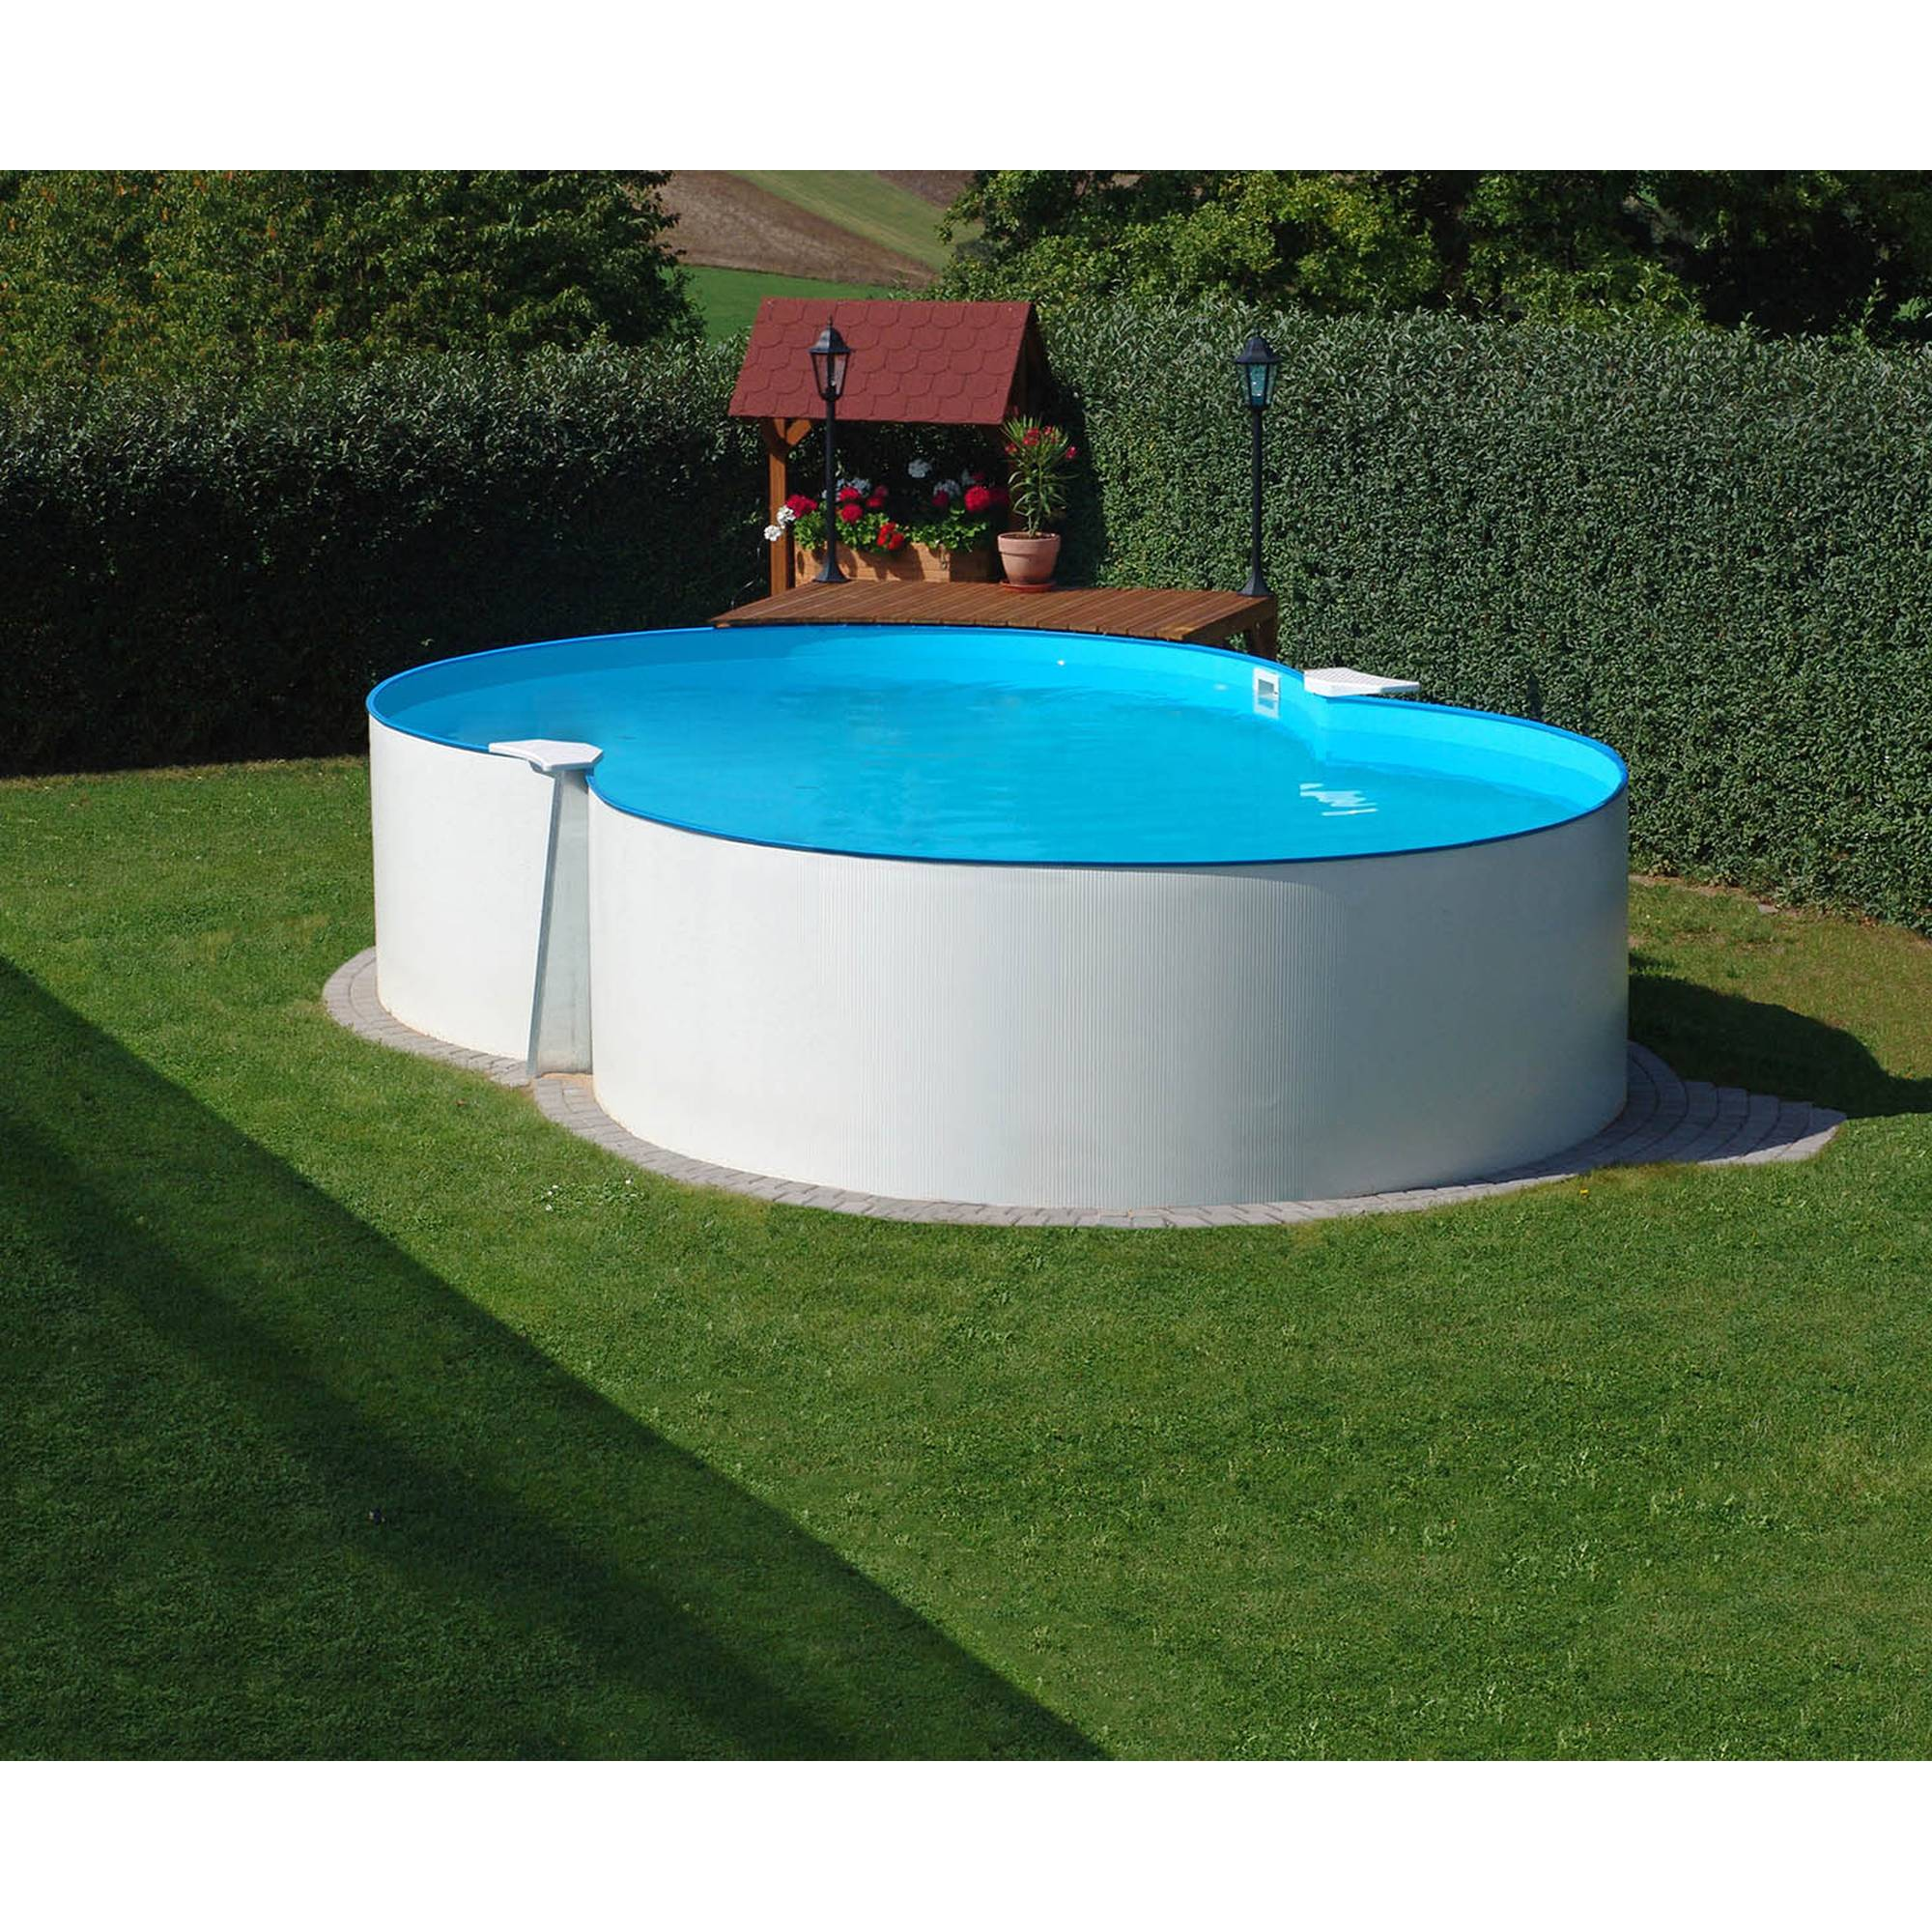 PLANET POOL Achtformpool Basic 470x300x120cm